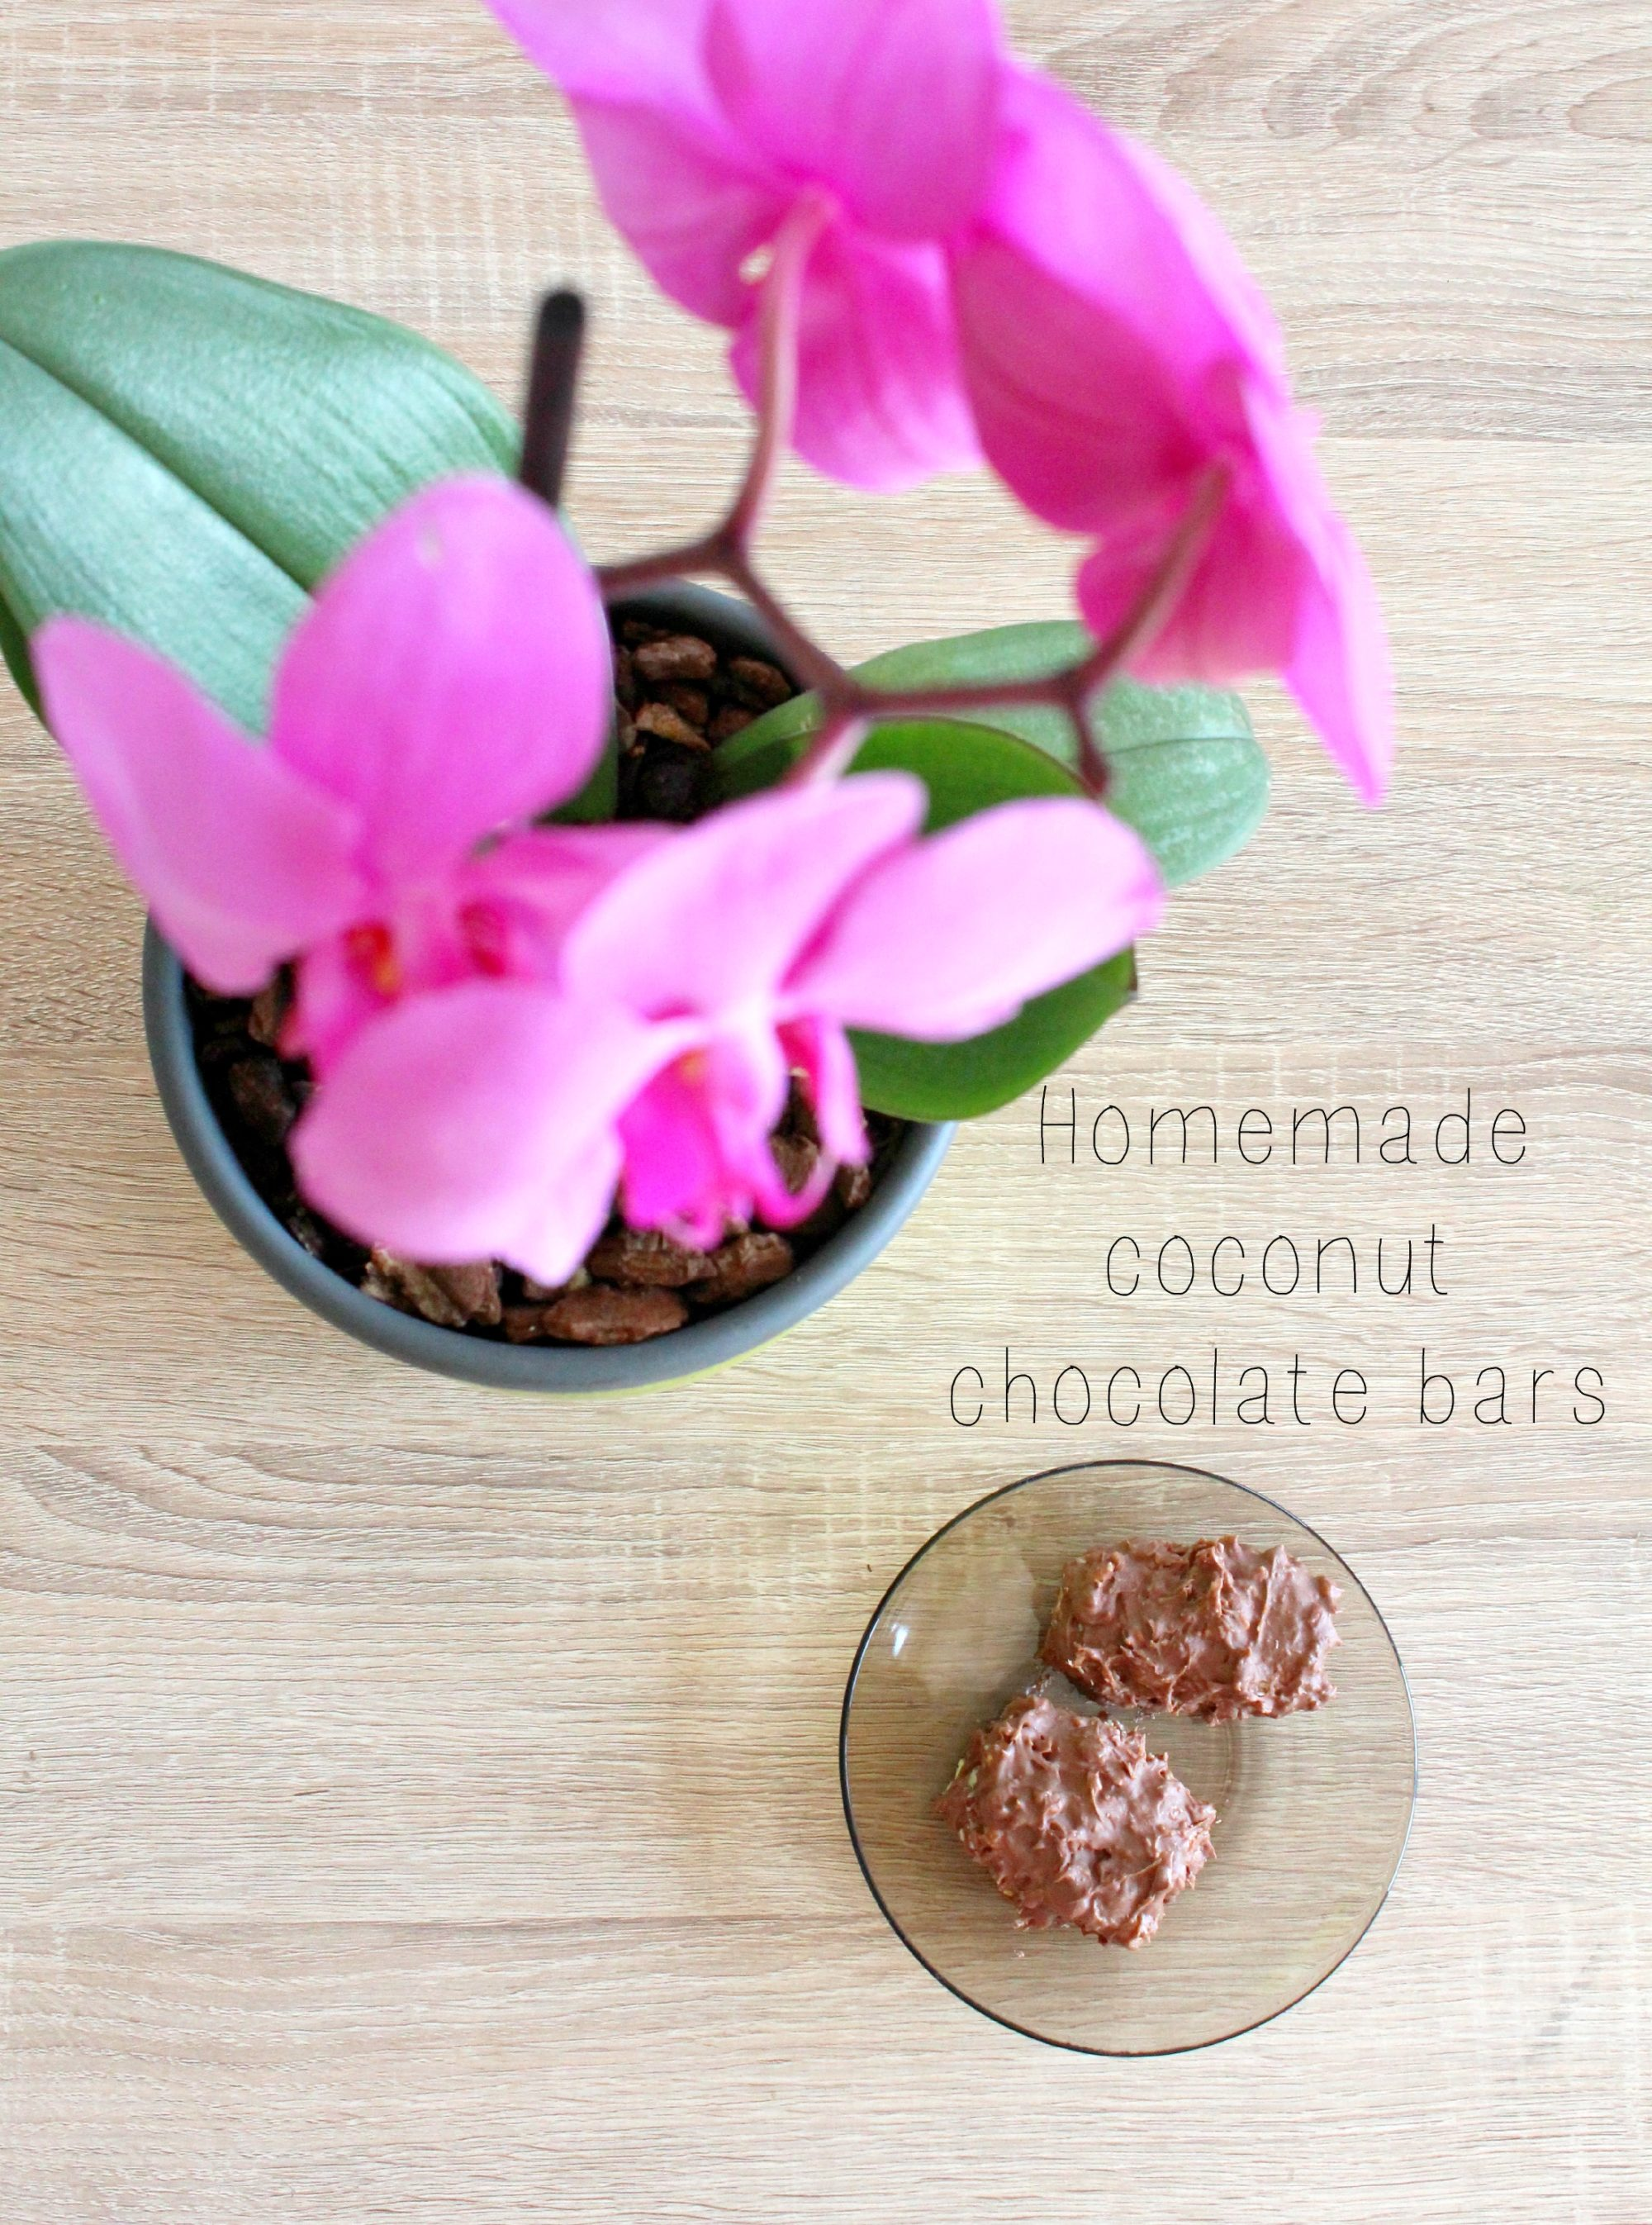 Homemade coconut chocolate bars